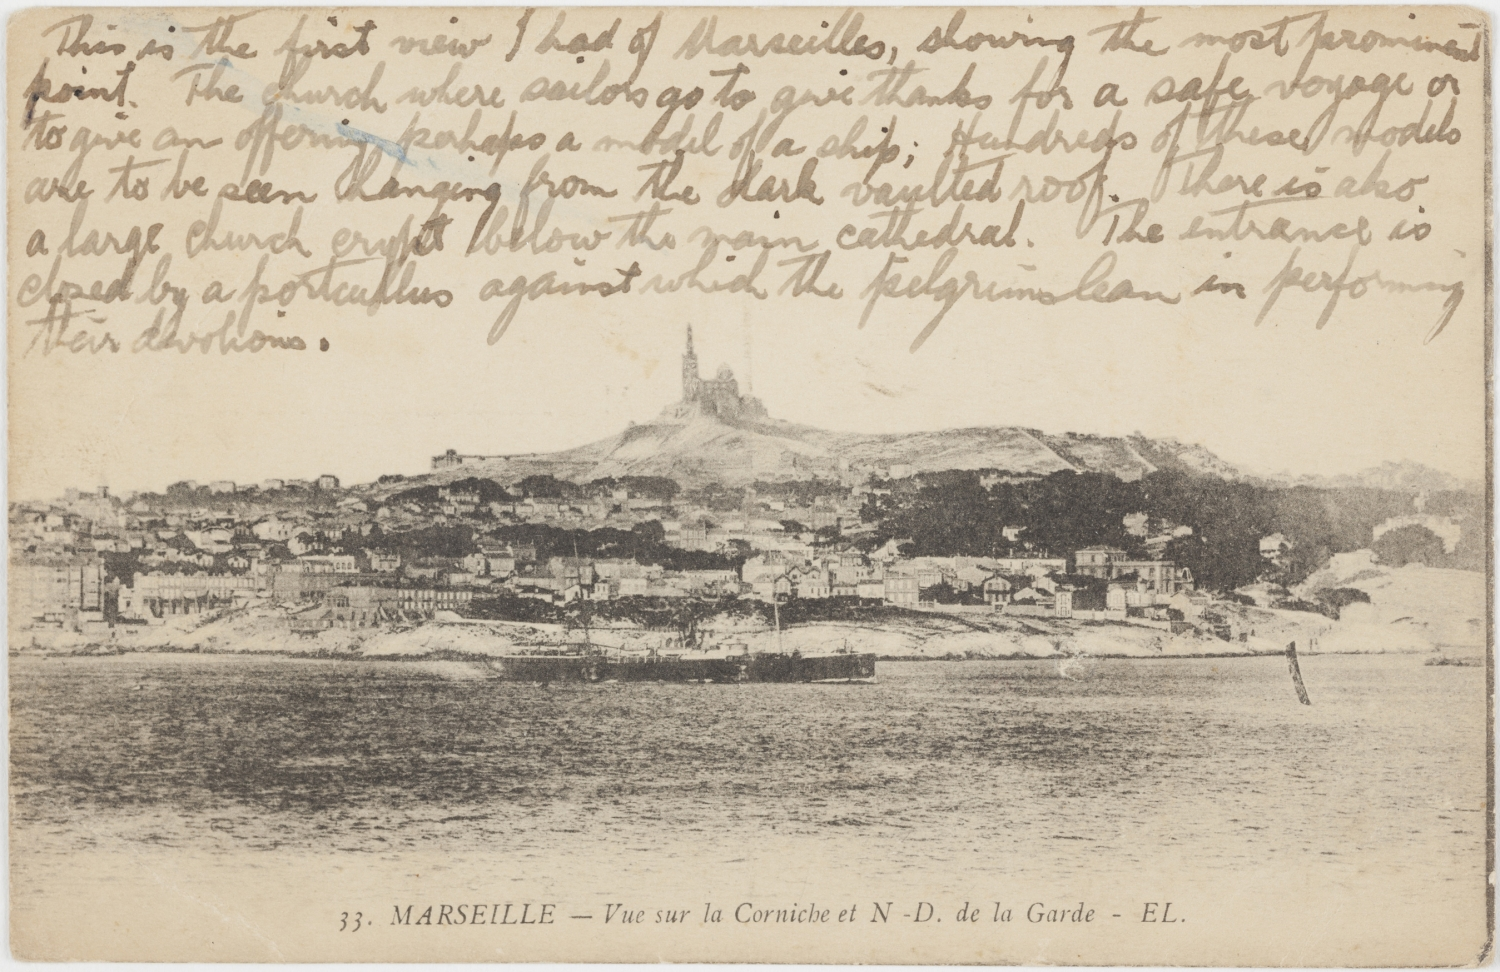 Handwriting on card with image below.